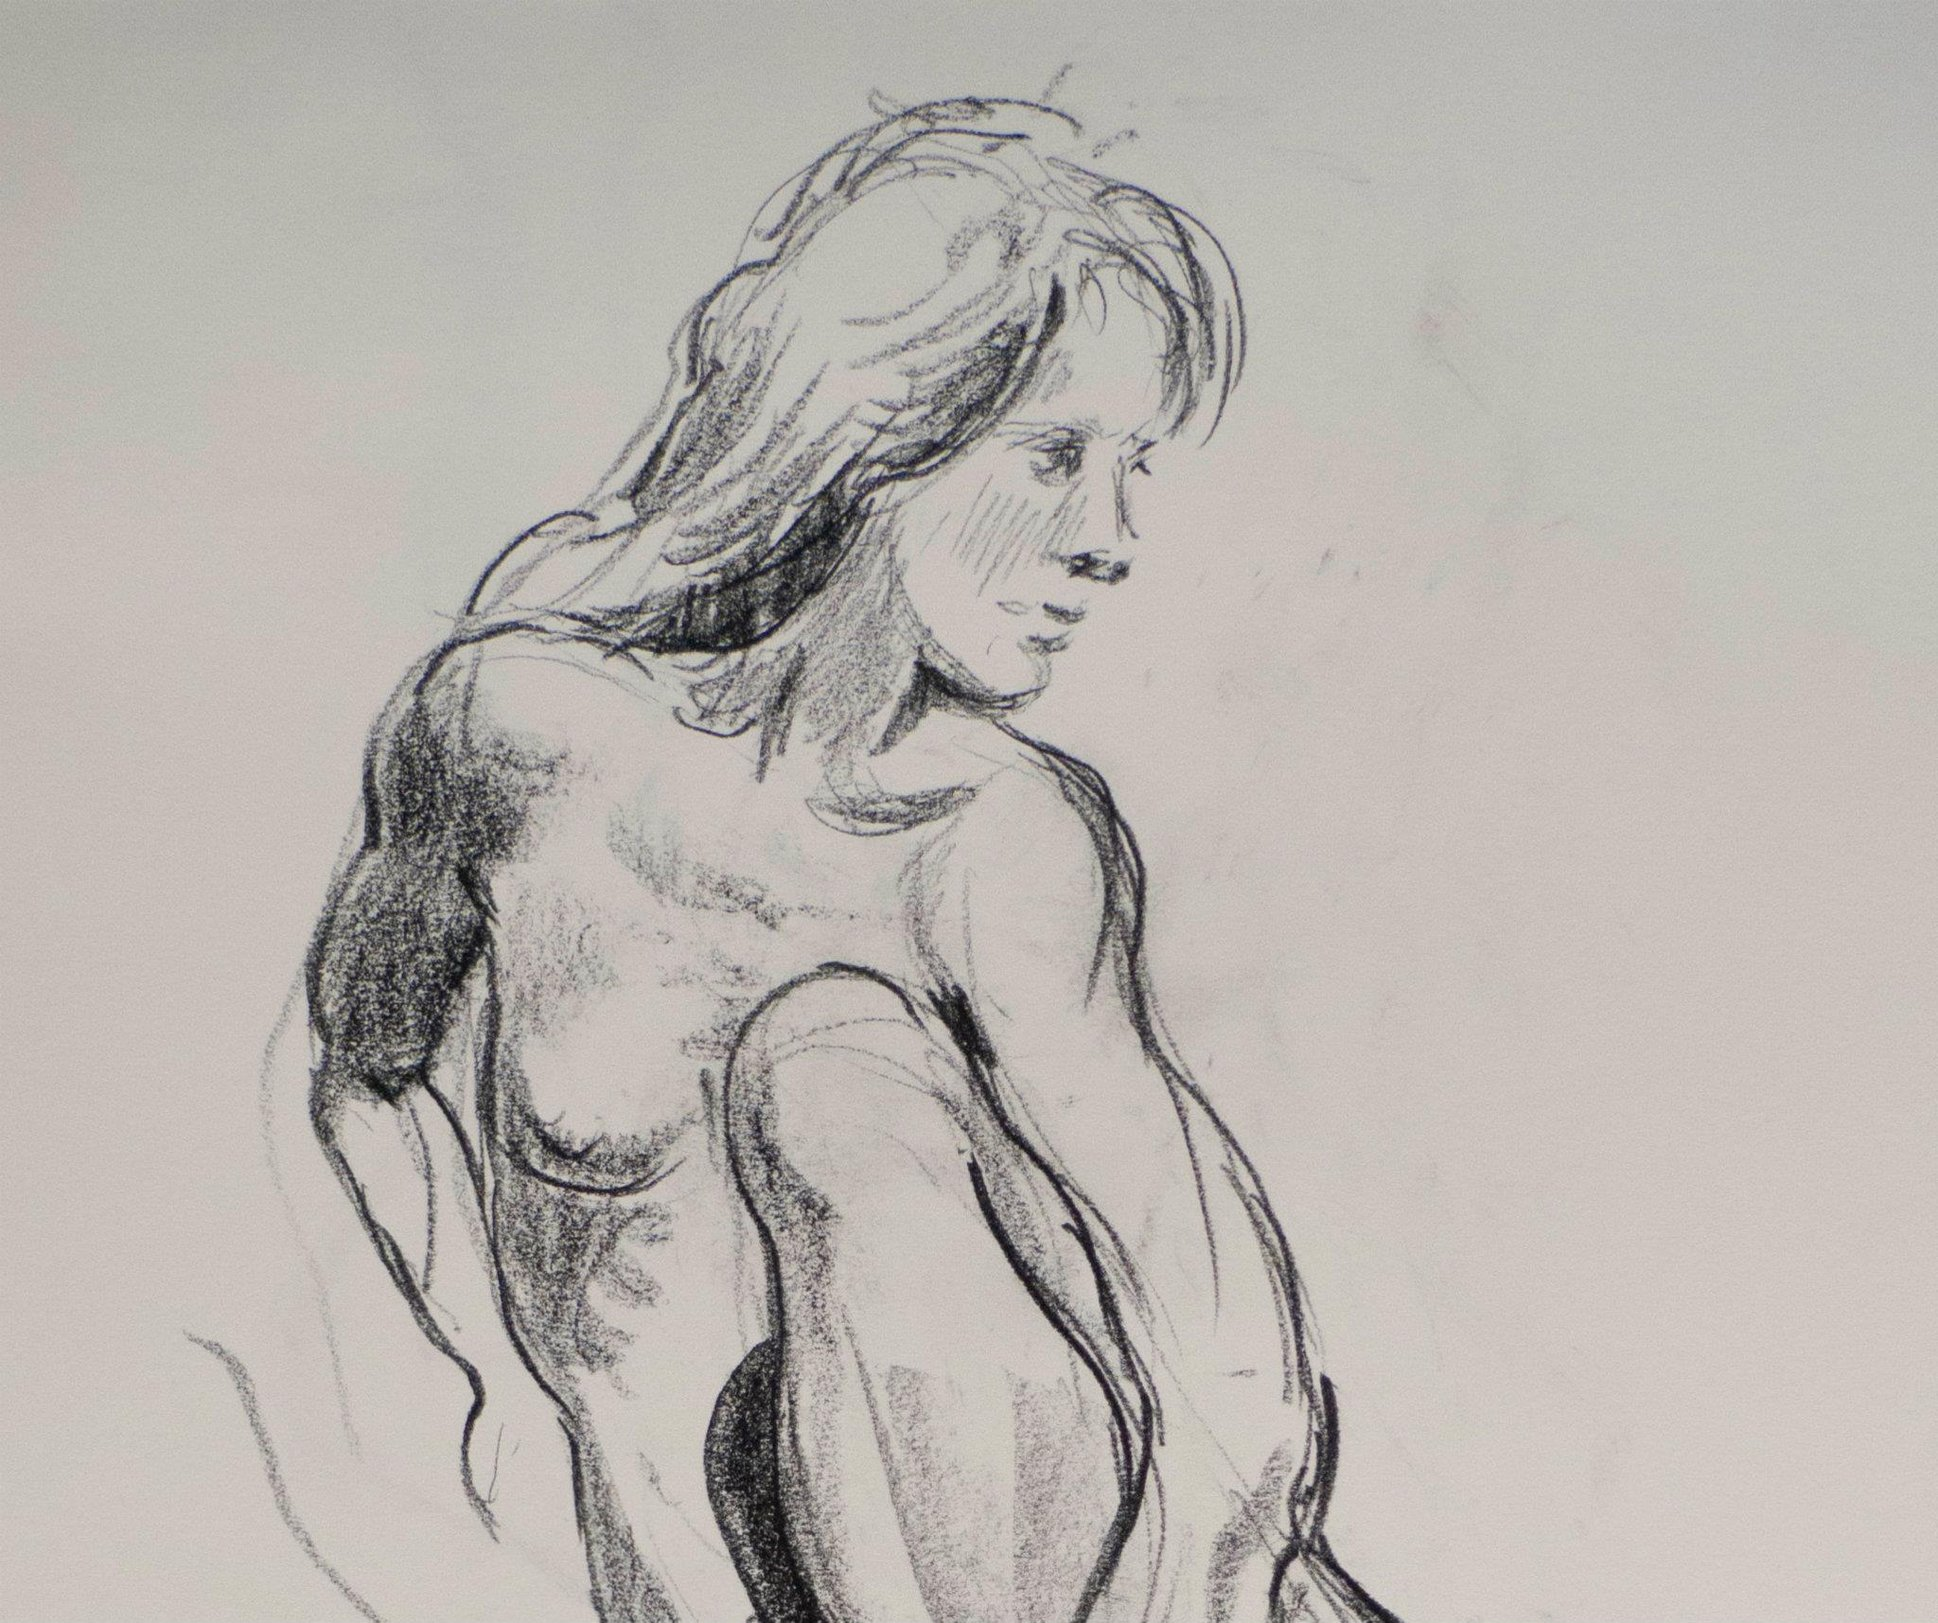 Drawings sel 15nov14  082.jpg